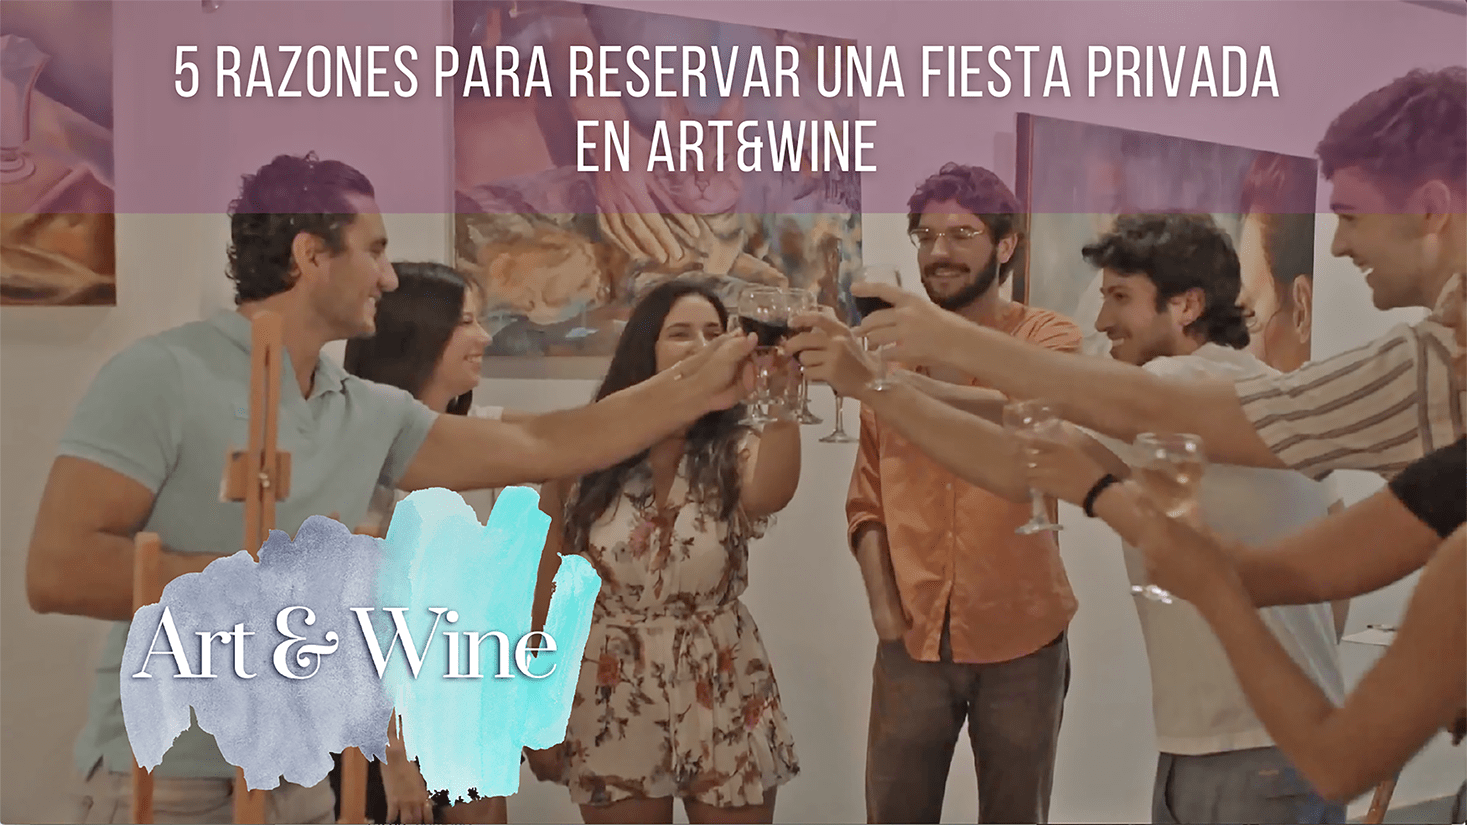 5 Reasons to book a private party at Art&Wine